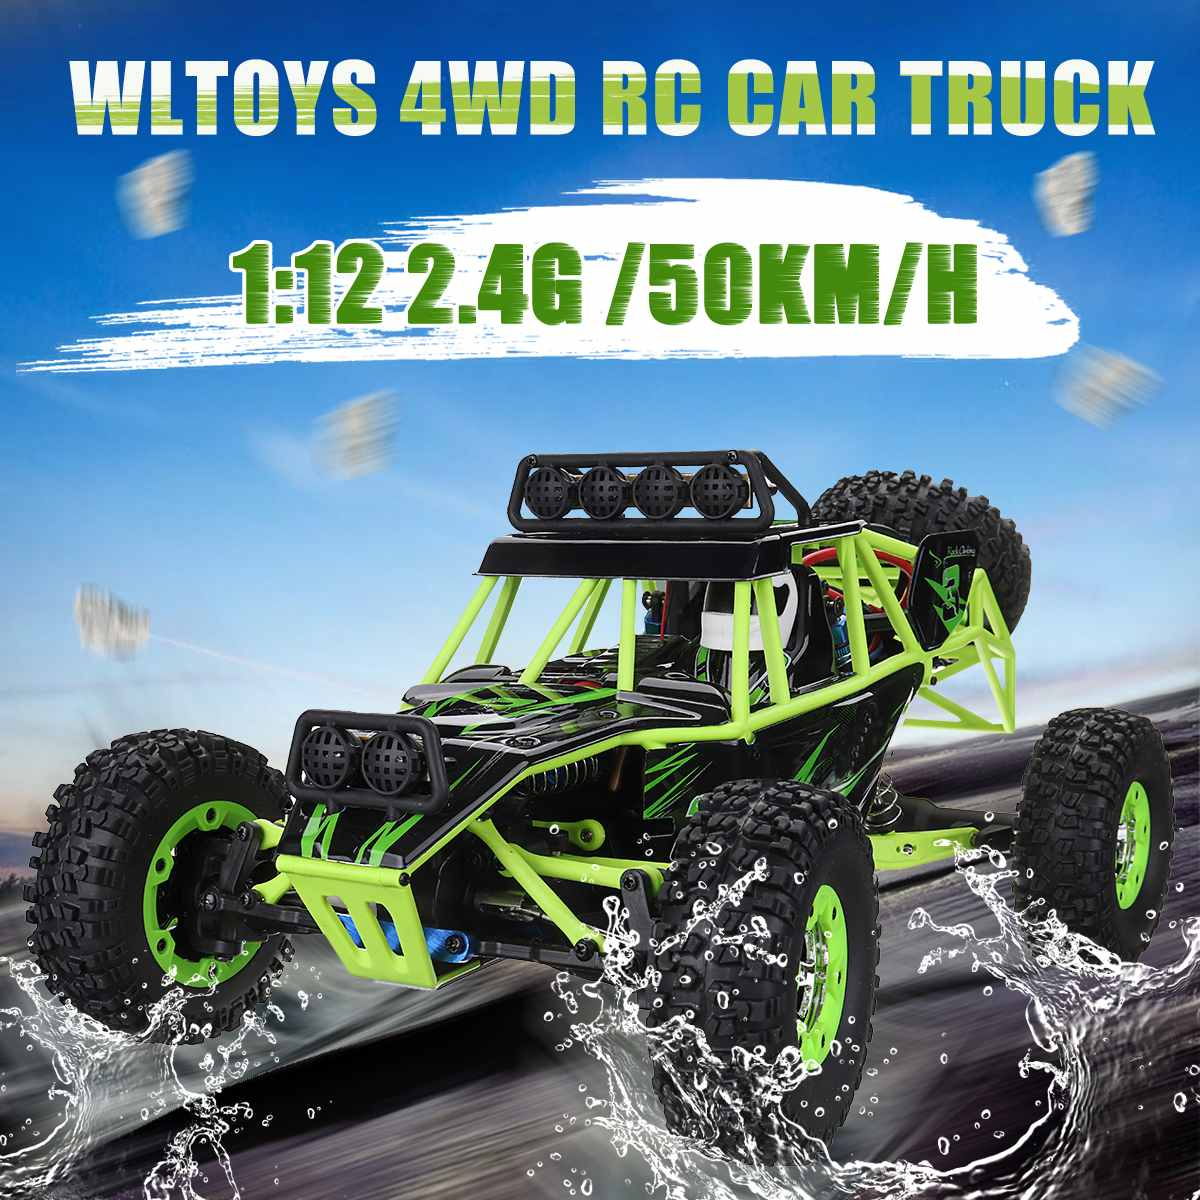 WLtoys 1:12 2.4G 4WD Rock RC Alloy Crawlers RC Climbing Racing Trucks High Speed 4CH Remote Control Car Off-road CrawlerWLtoys 1:12 2.4G 4WD Rock RC Alloy Crawlers RC Climbing Racing Trucks High Speed 4CH Remote Control Car Off-road Crawler